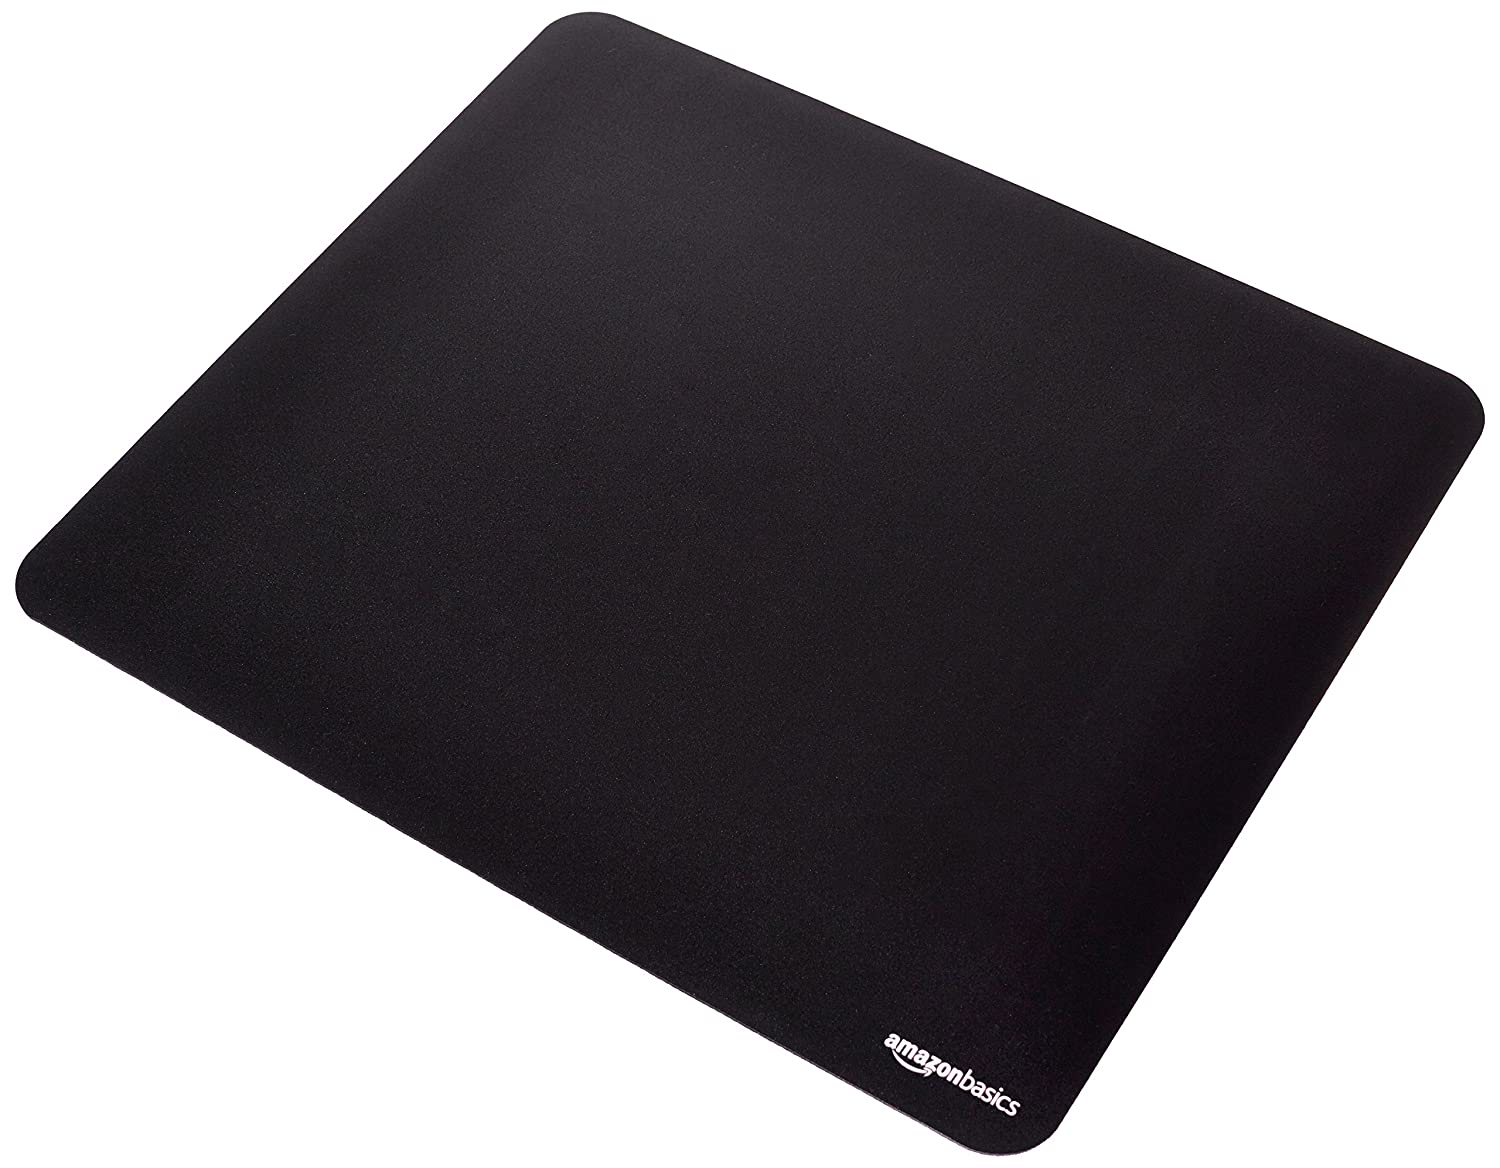 AmazonBasics XXL Gaming Mouse Pad